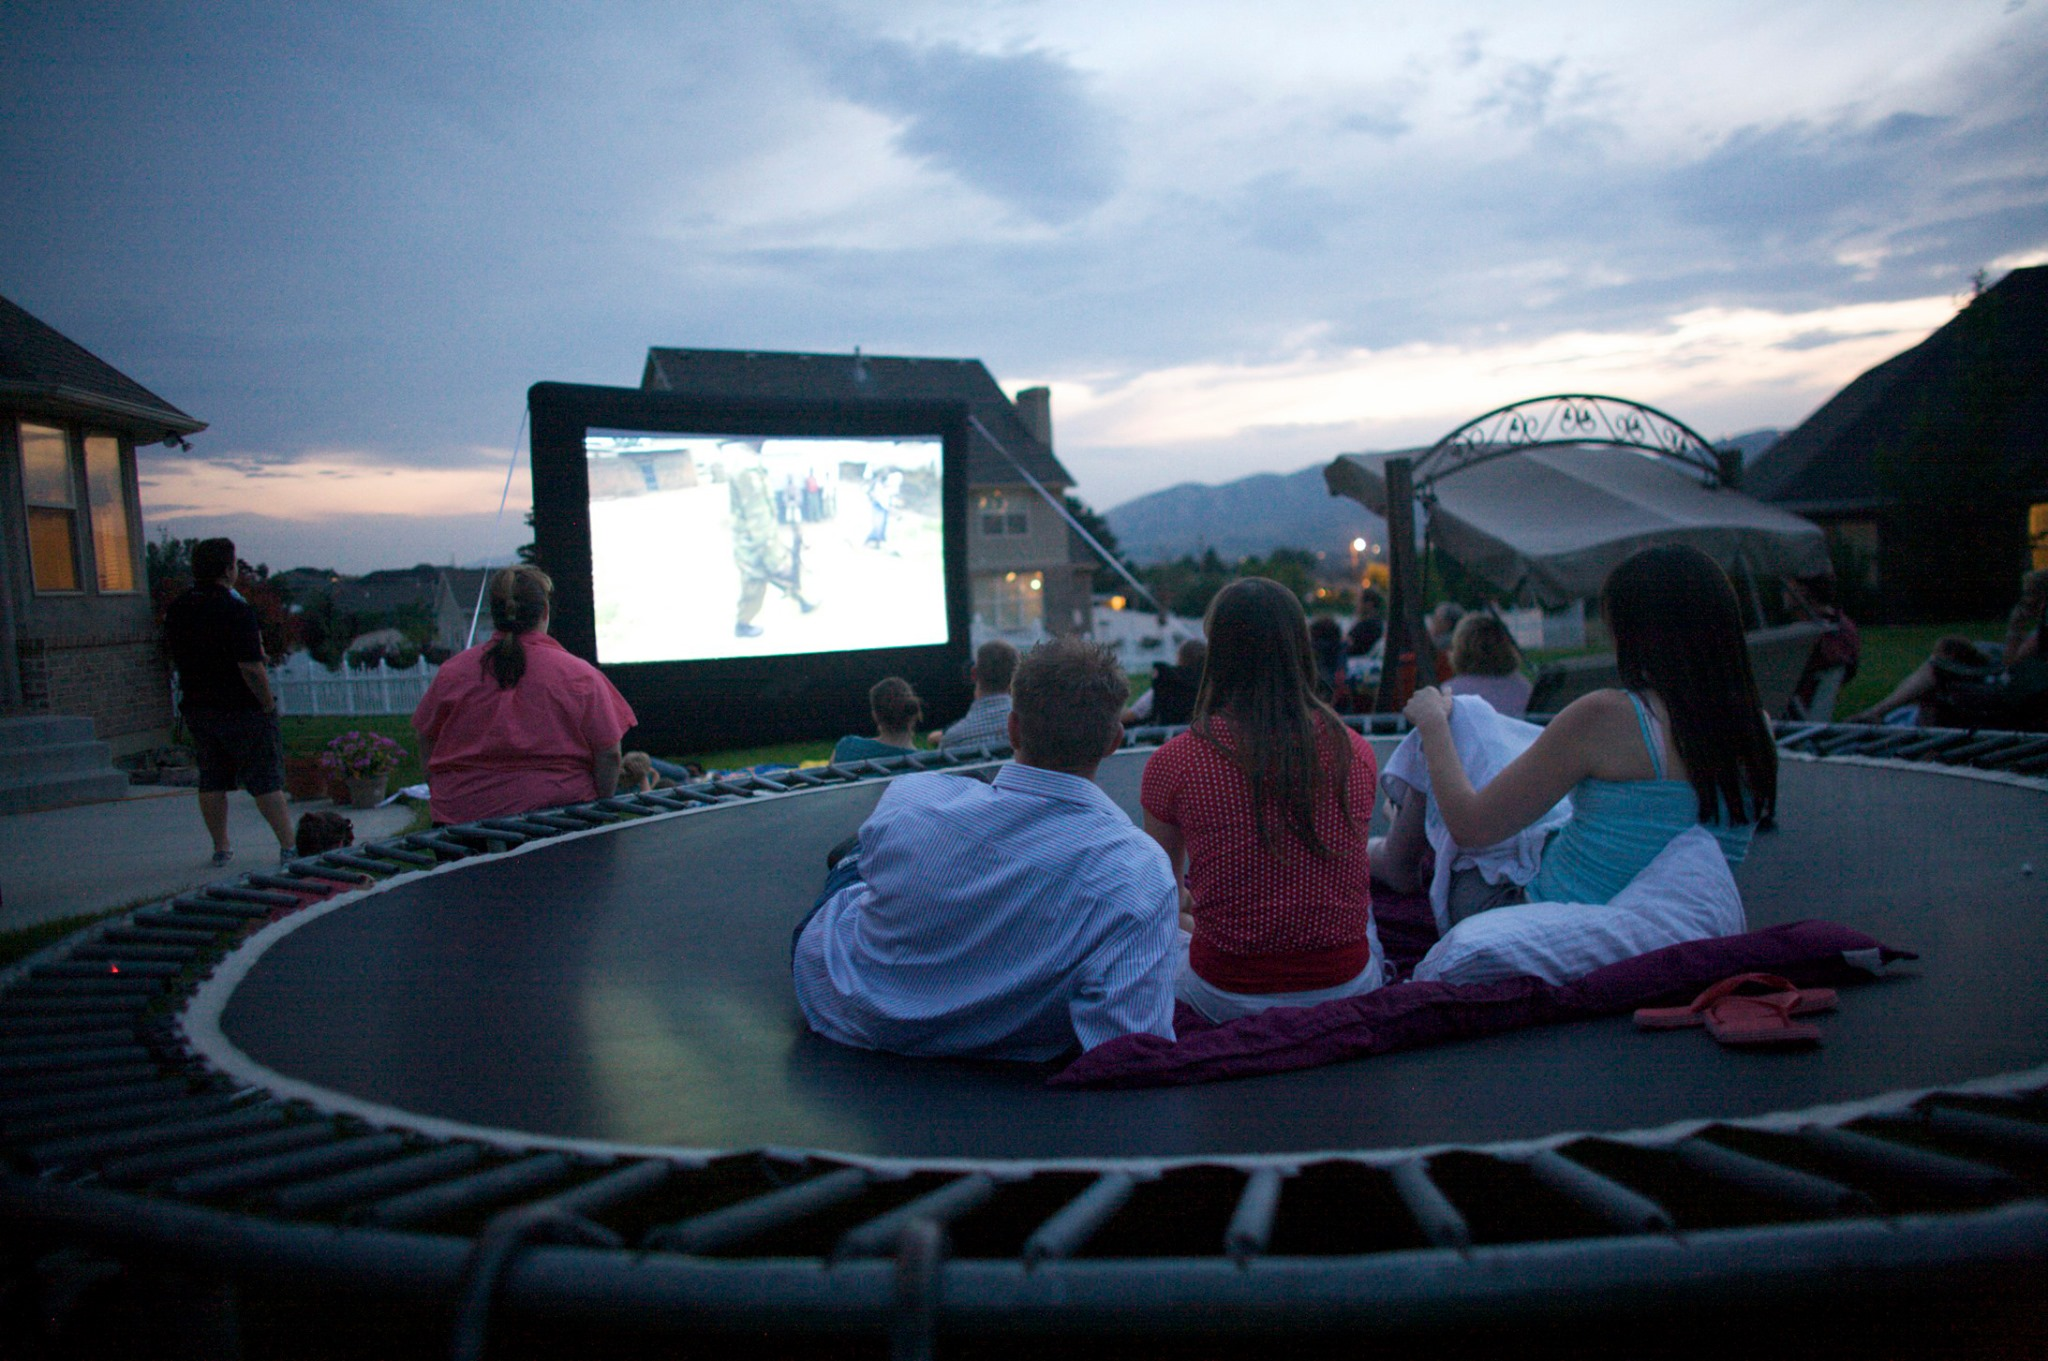 3 people laying outside on a trampoline watching a movie on a big screen.